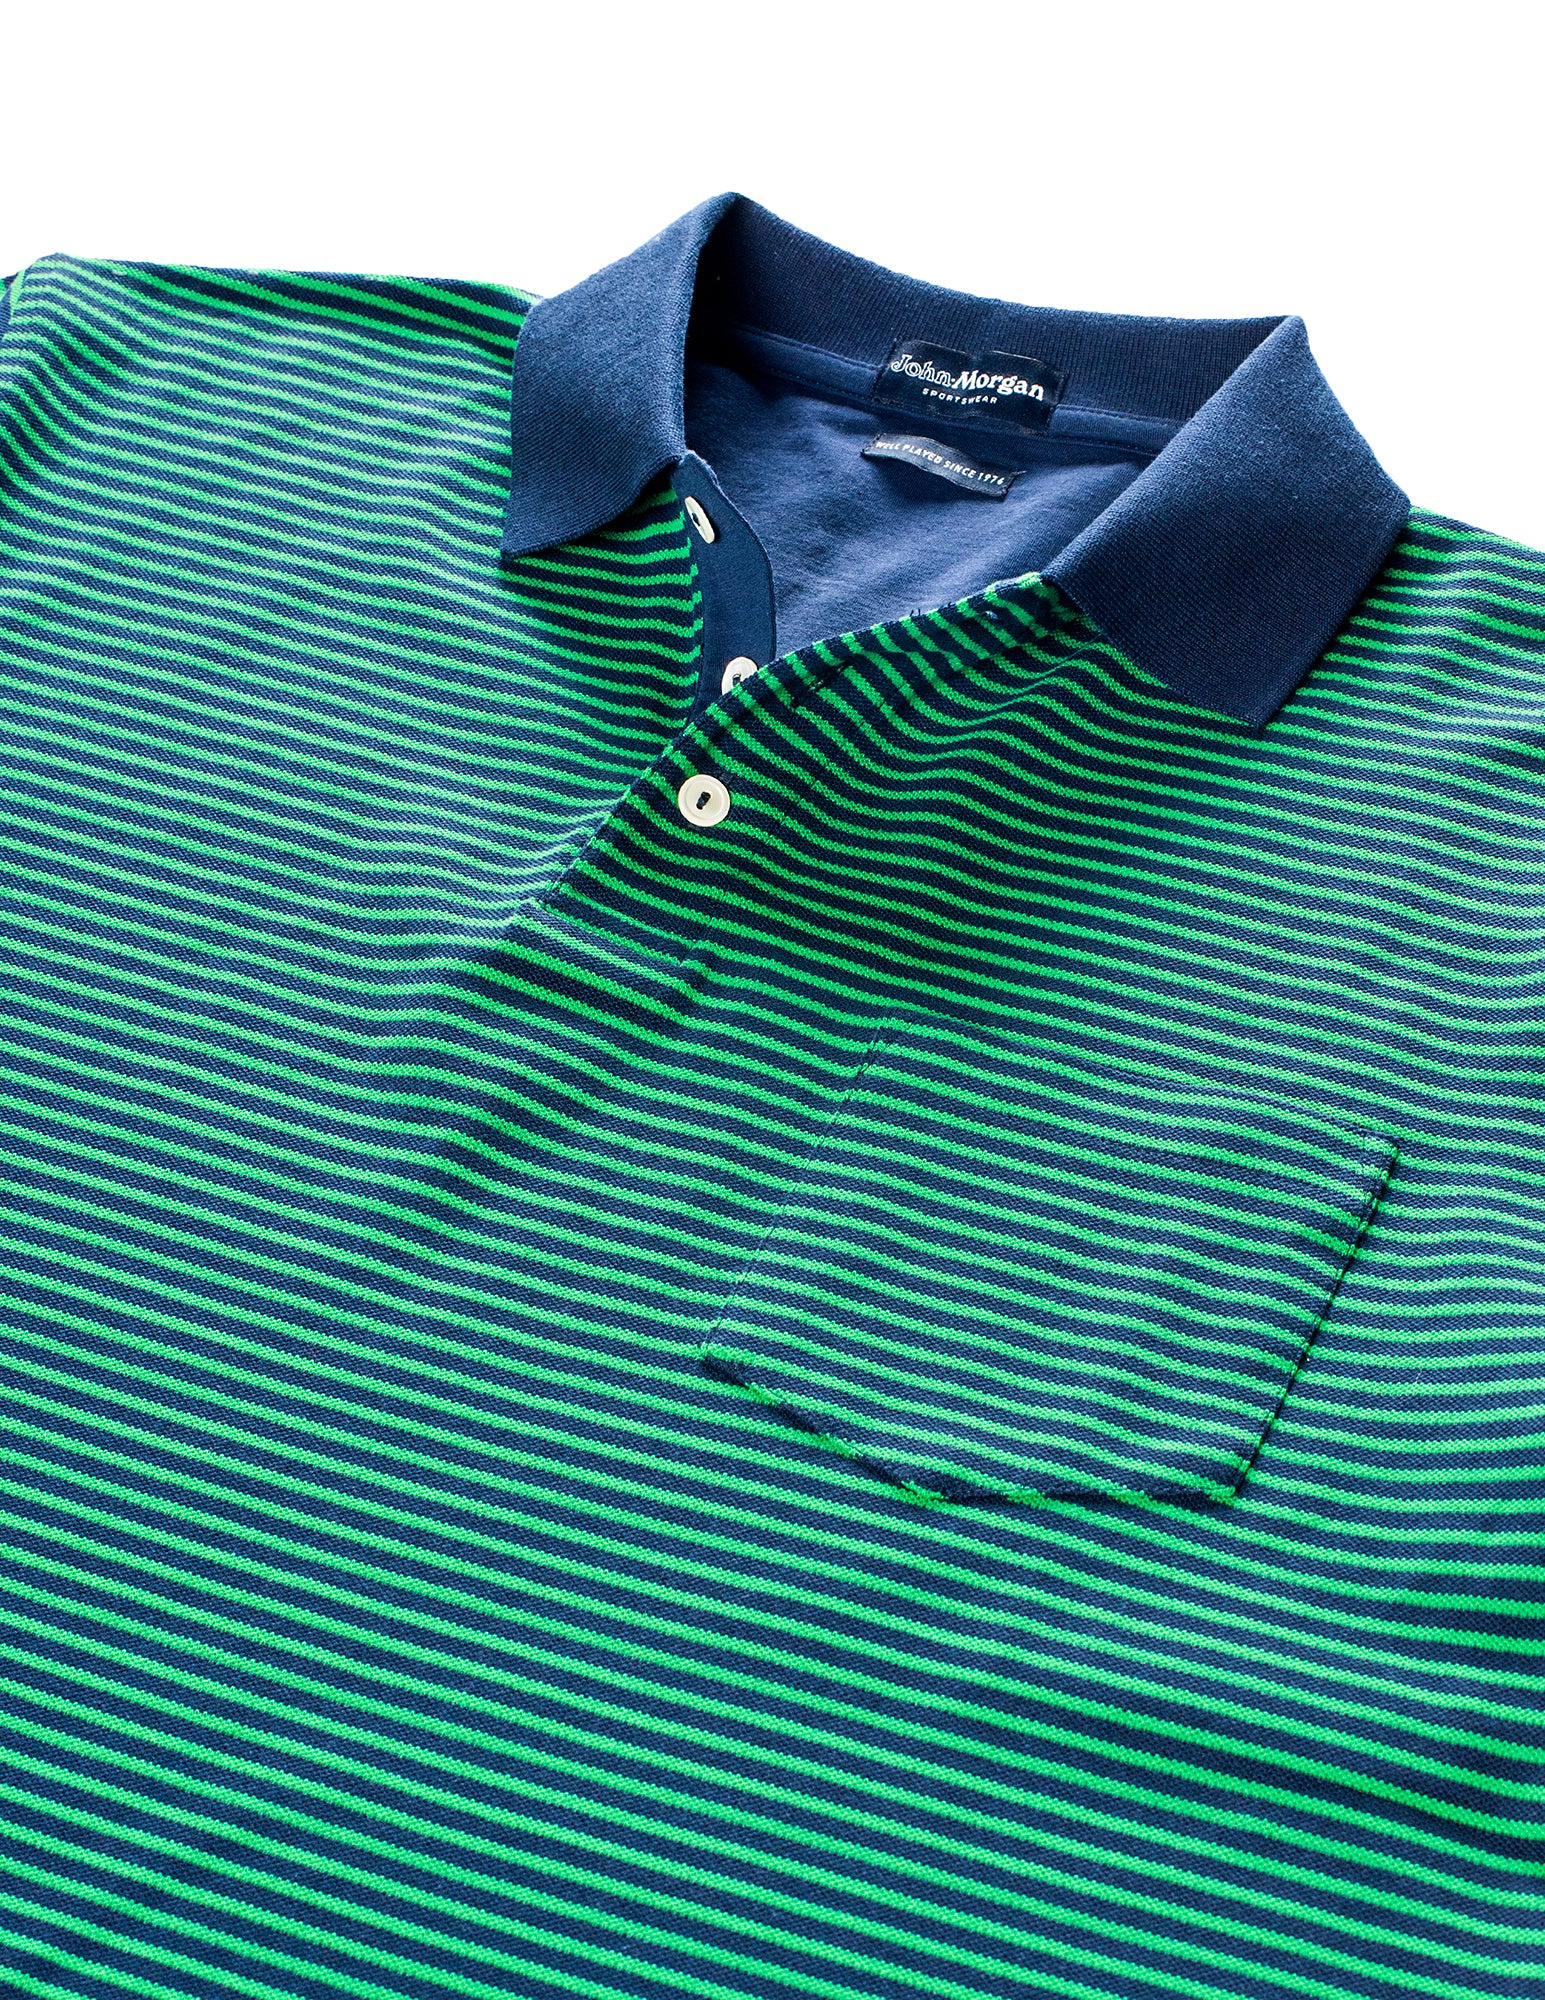 Stewart Luxe Pique Stripe Polo - Navy/Leaf